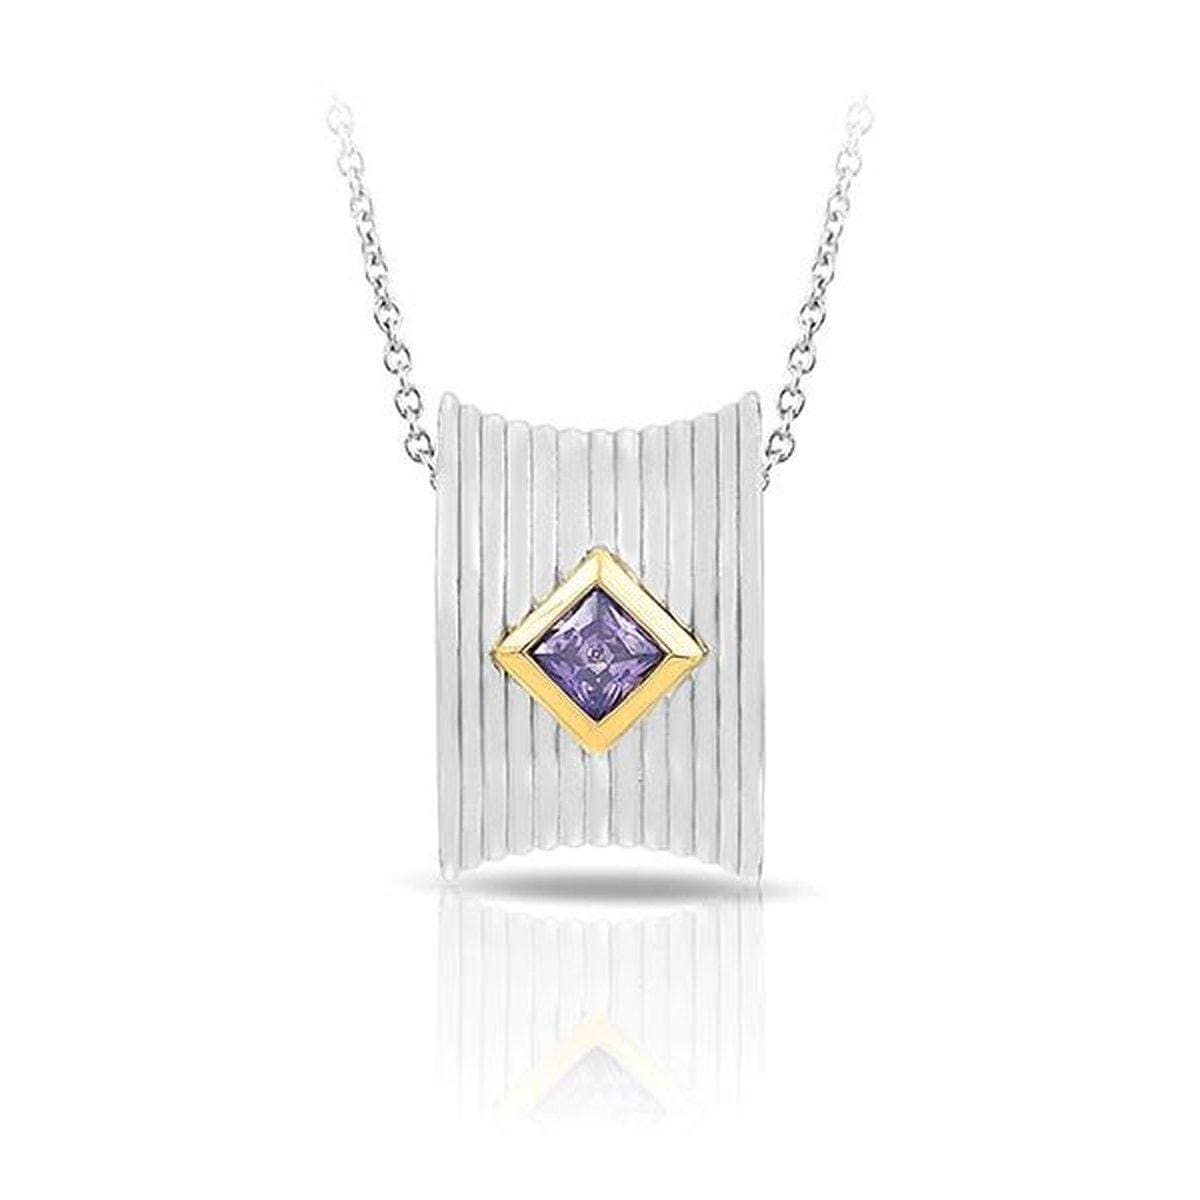 Valore Silver & Amethyst Pendant-Belle Etoile-Renee Taylor Gallery